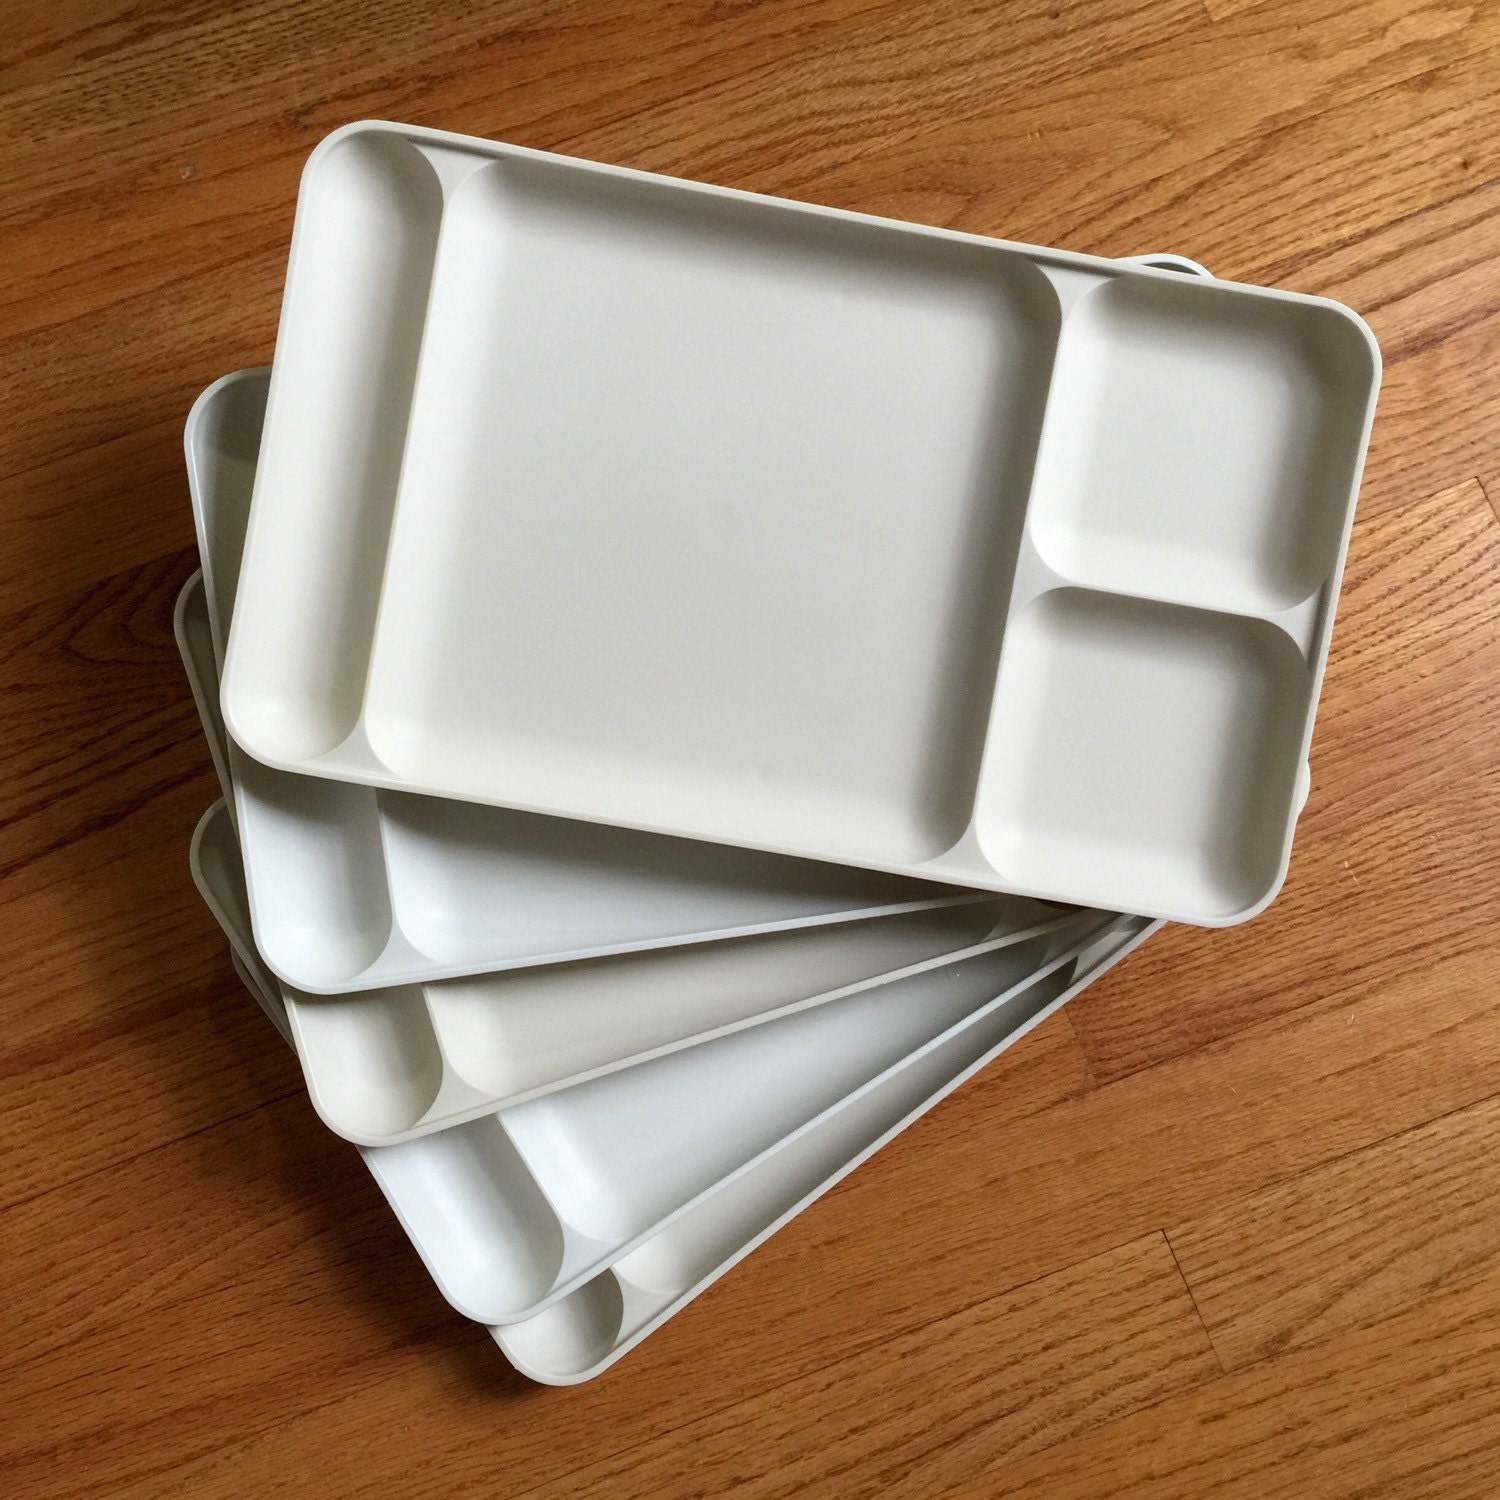 Tupperware Lunch Trays 70s Vgc Set Of 5 Cream And Almond